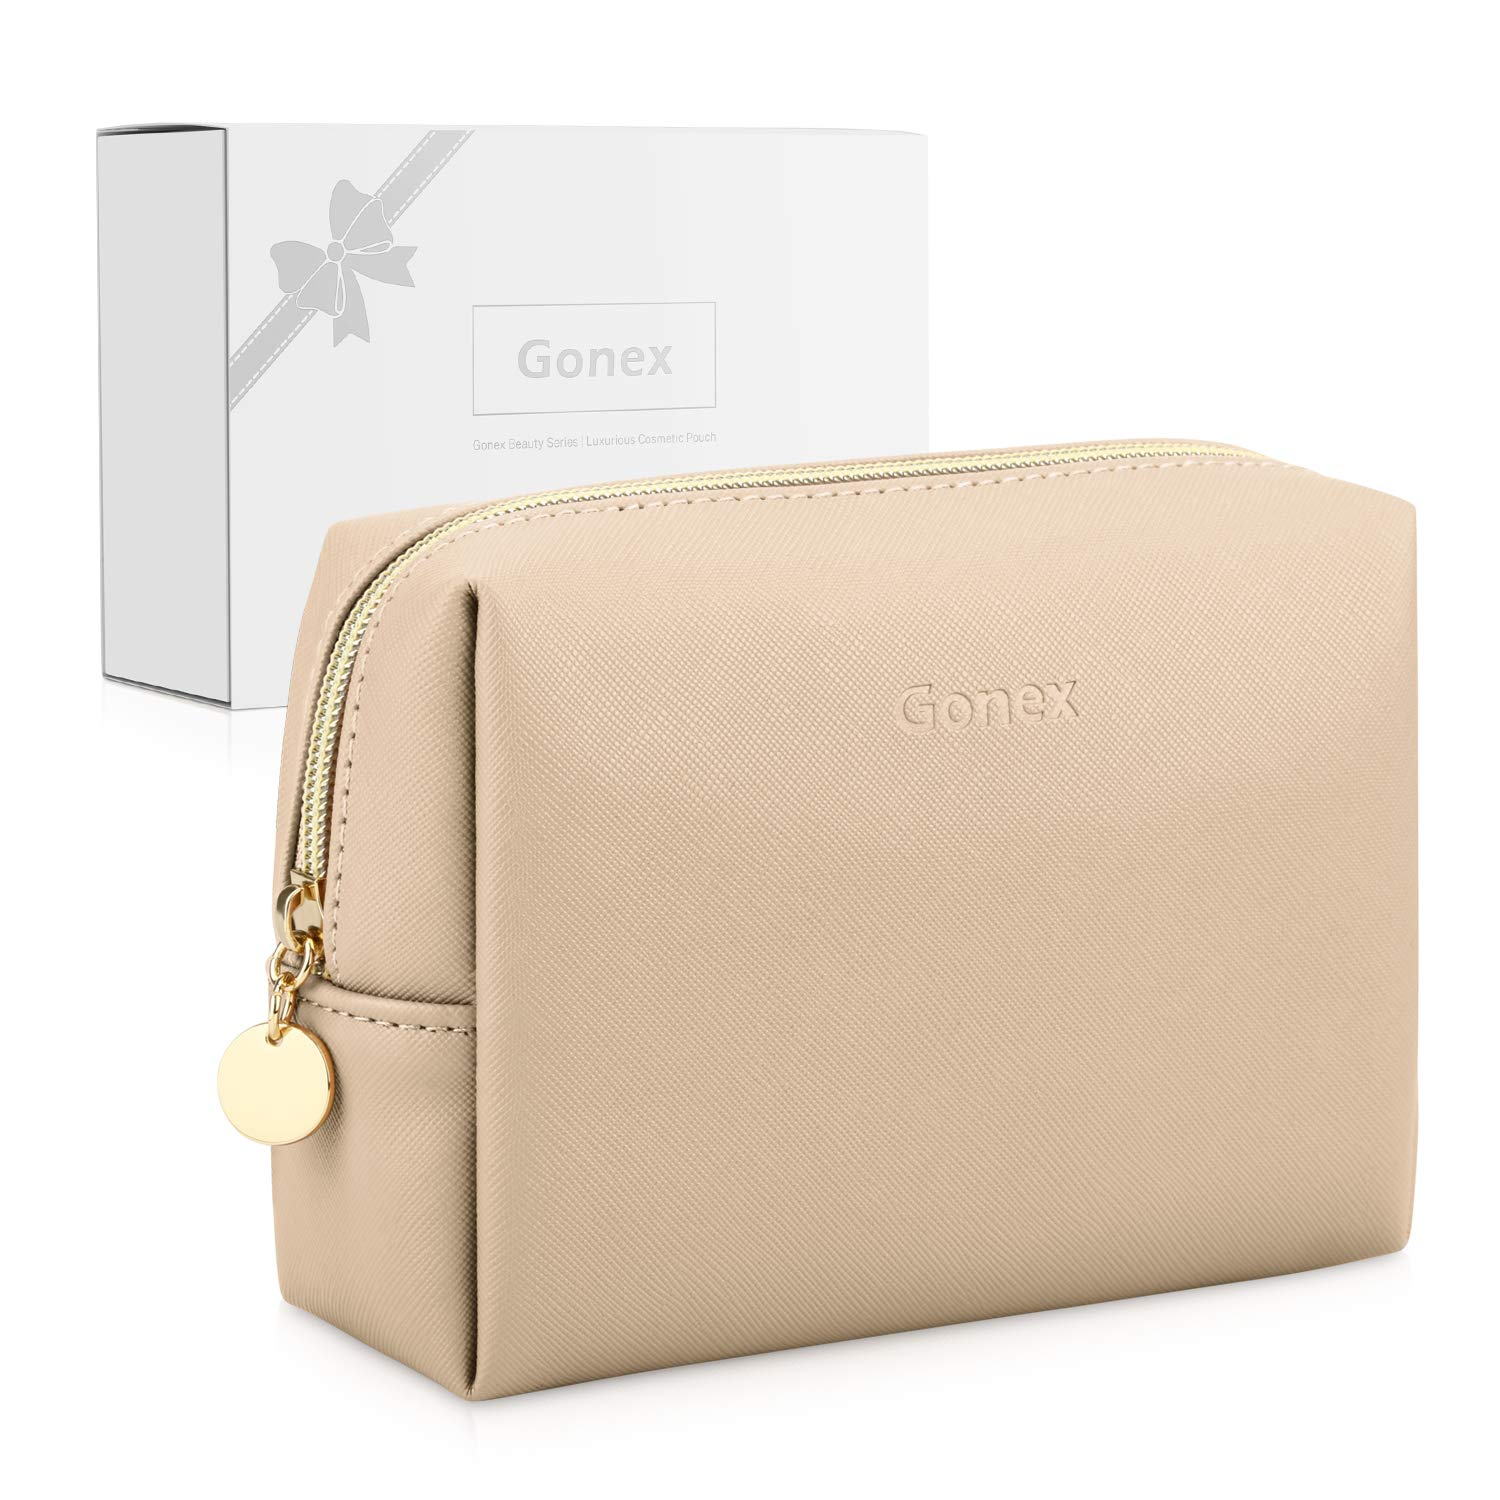 Gonex Small Makeup Bag for Purse PU Vegan Leather Travel Cosmetic Pouch Toiletry Bag for Women Girls Gifts with Gift Box Portable Water-Resistant Daily Storage Organzier Khaki